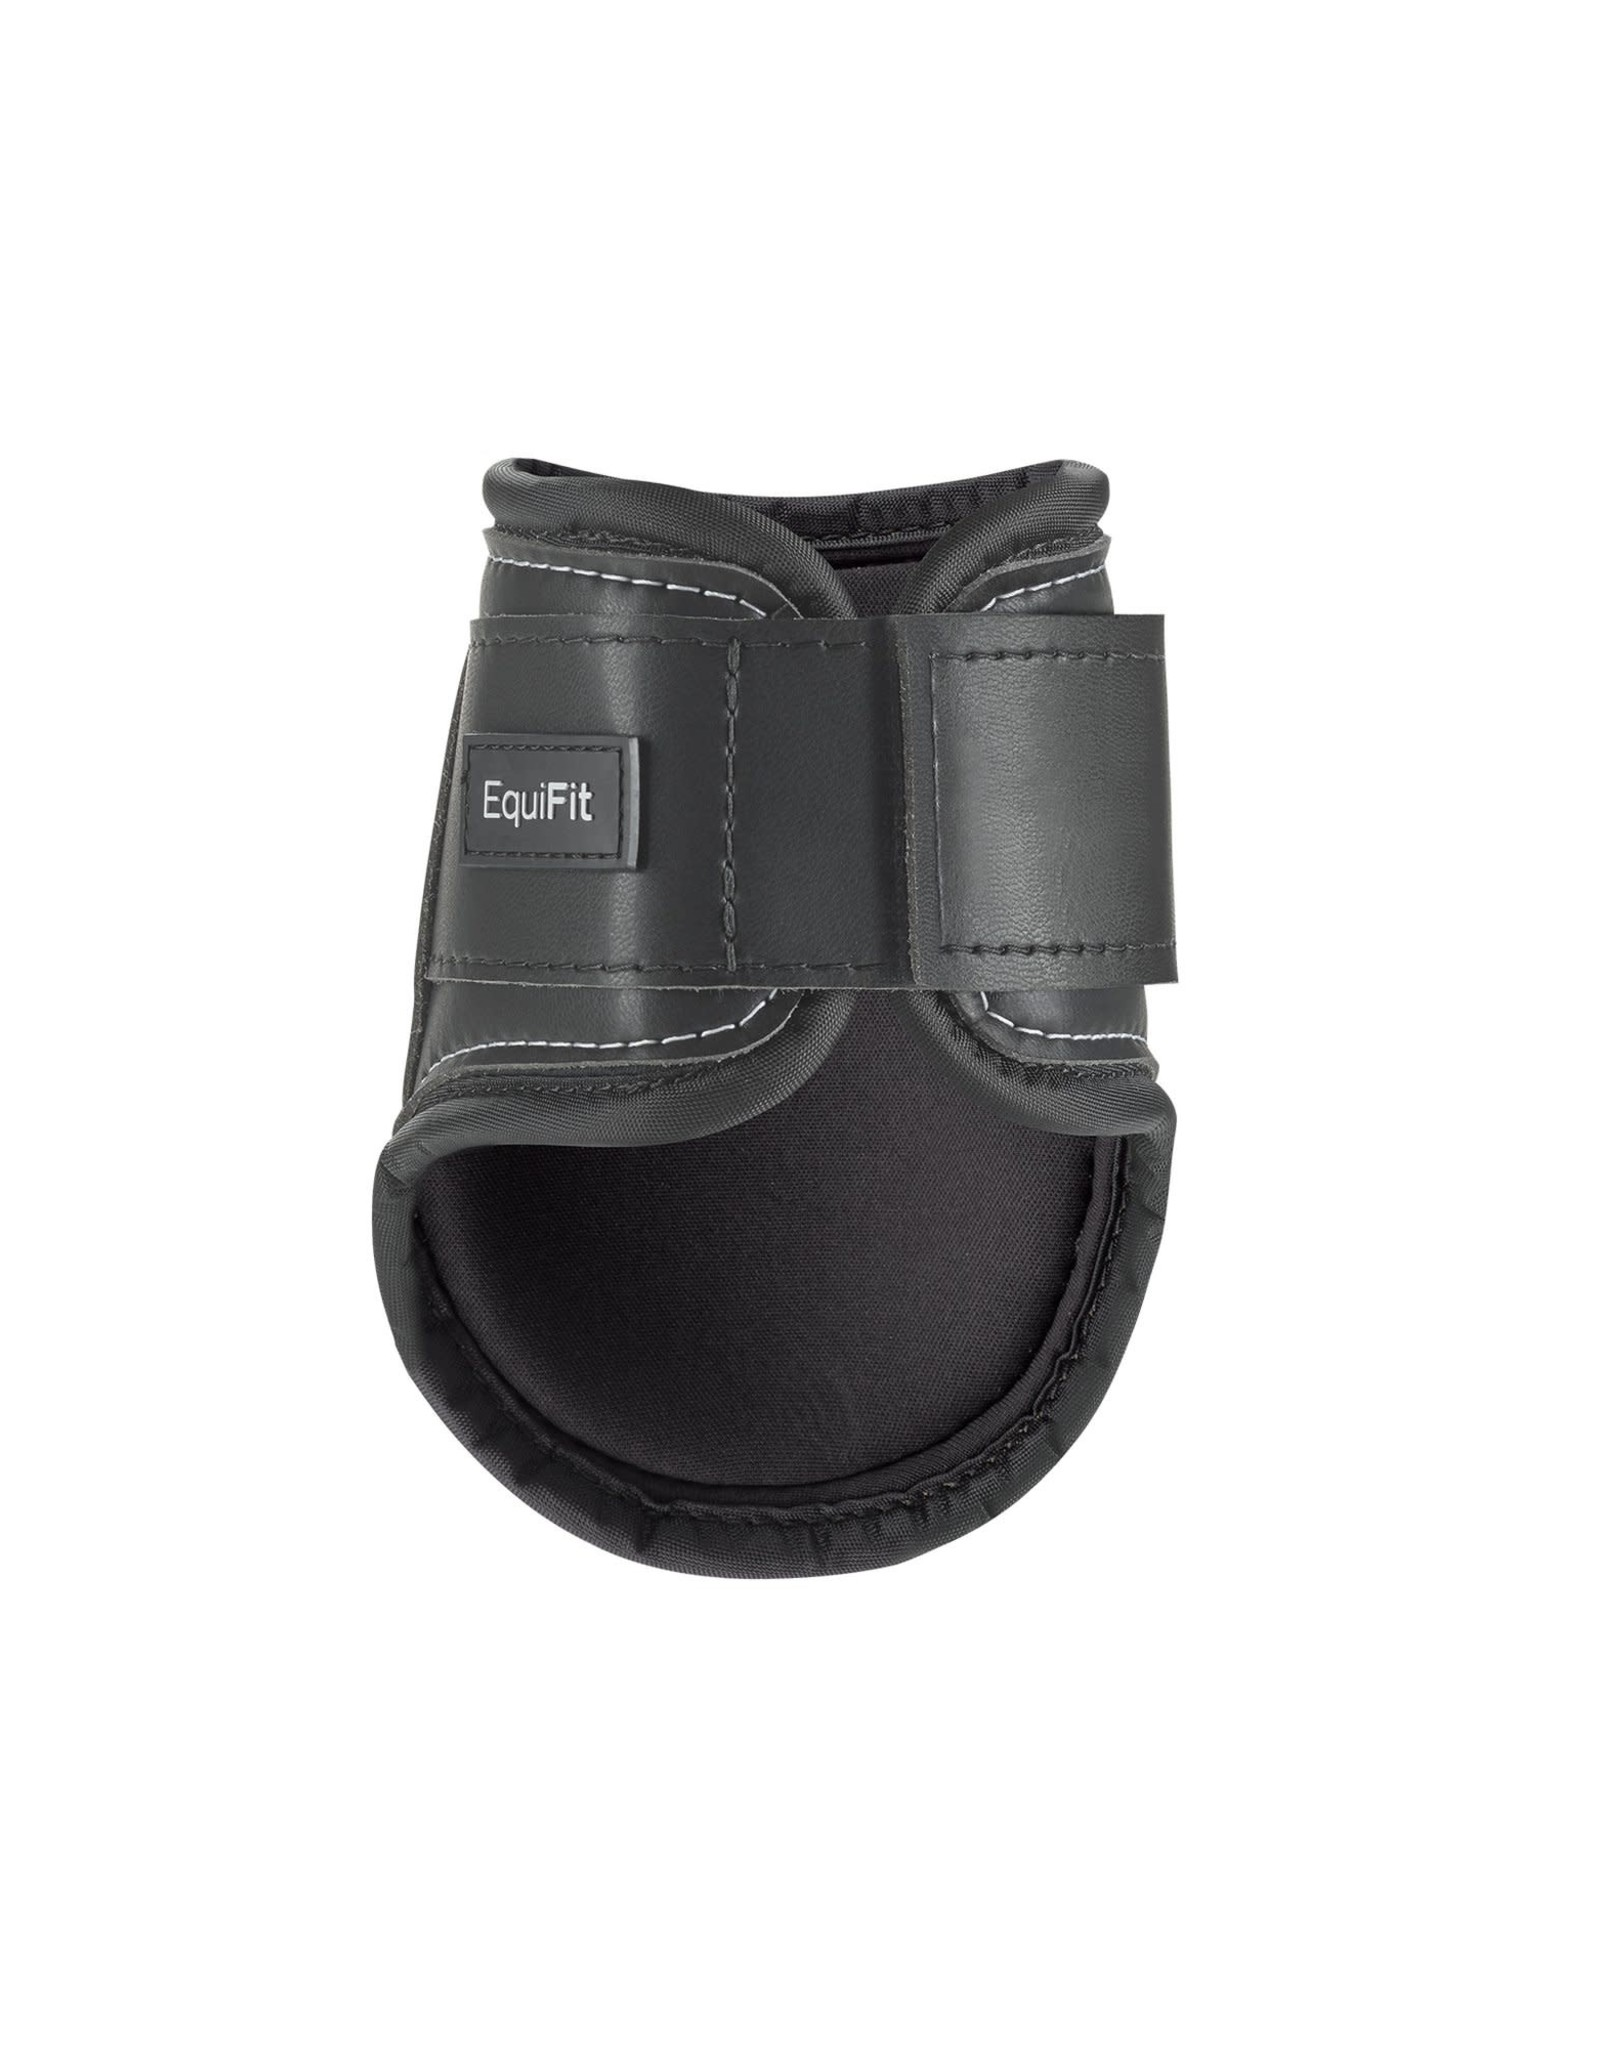 EQUIFIT YOUNG HORSE HIND BOOT - IMPACTEQ LINER